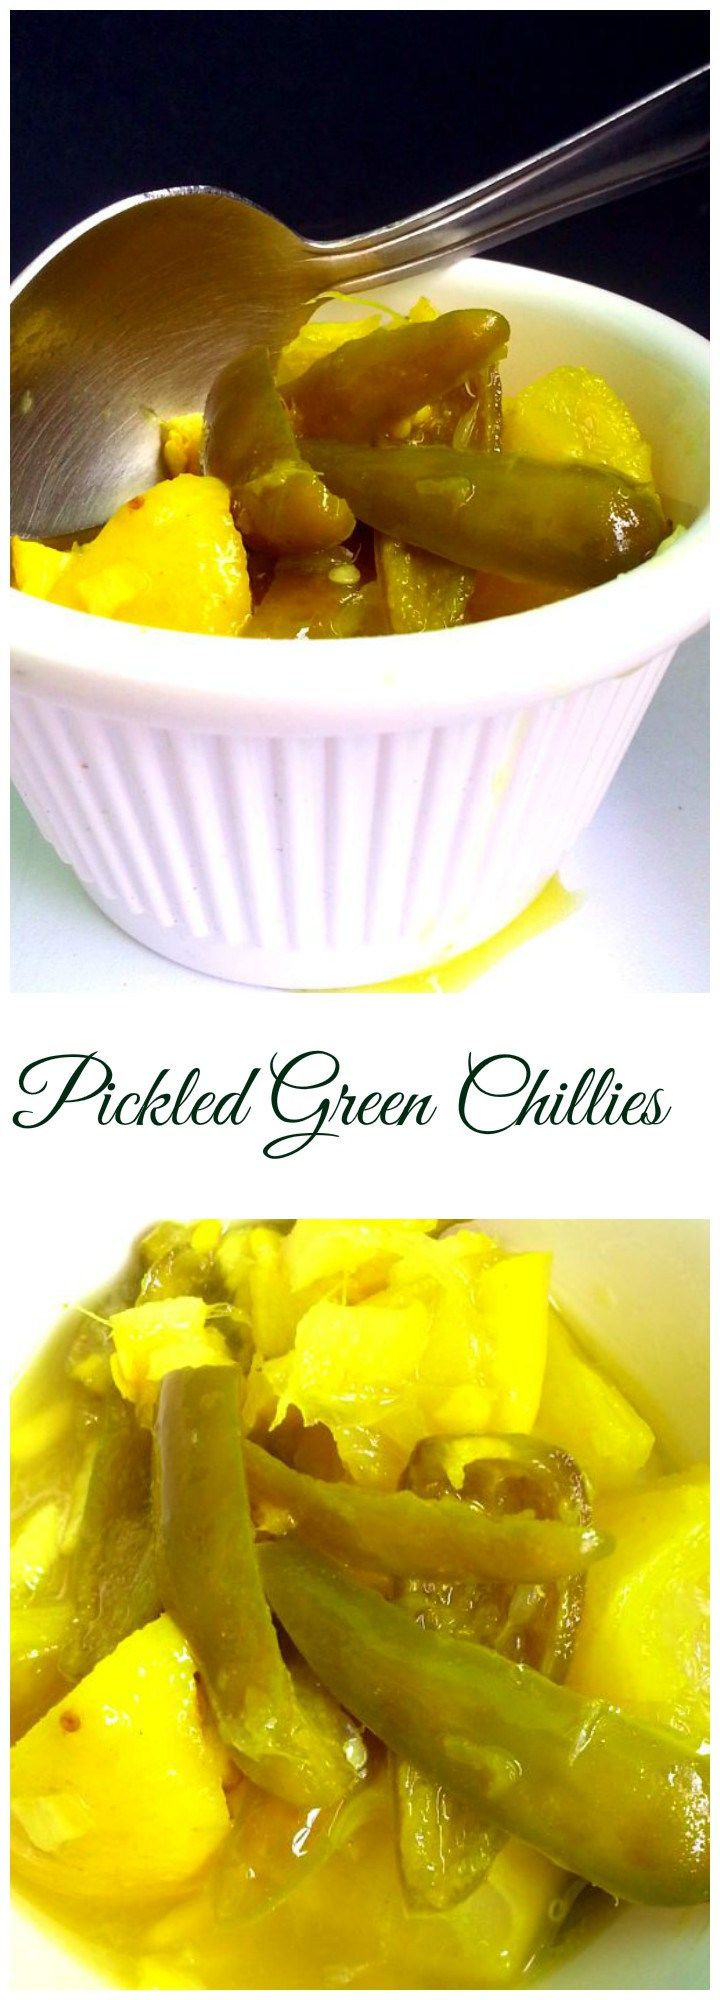 Pickled Green Chillies, Lemon Chilli : A tasty, spicy and sour lemon pickle. The…